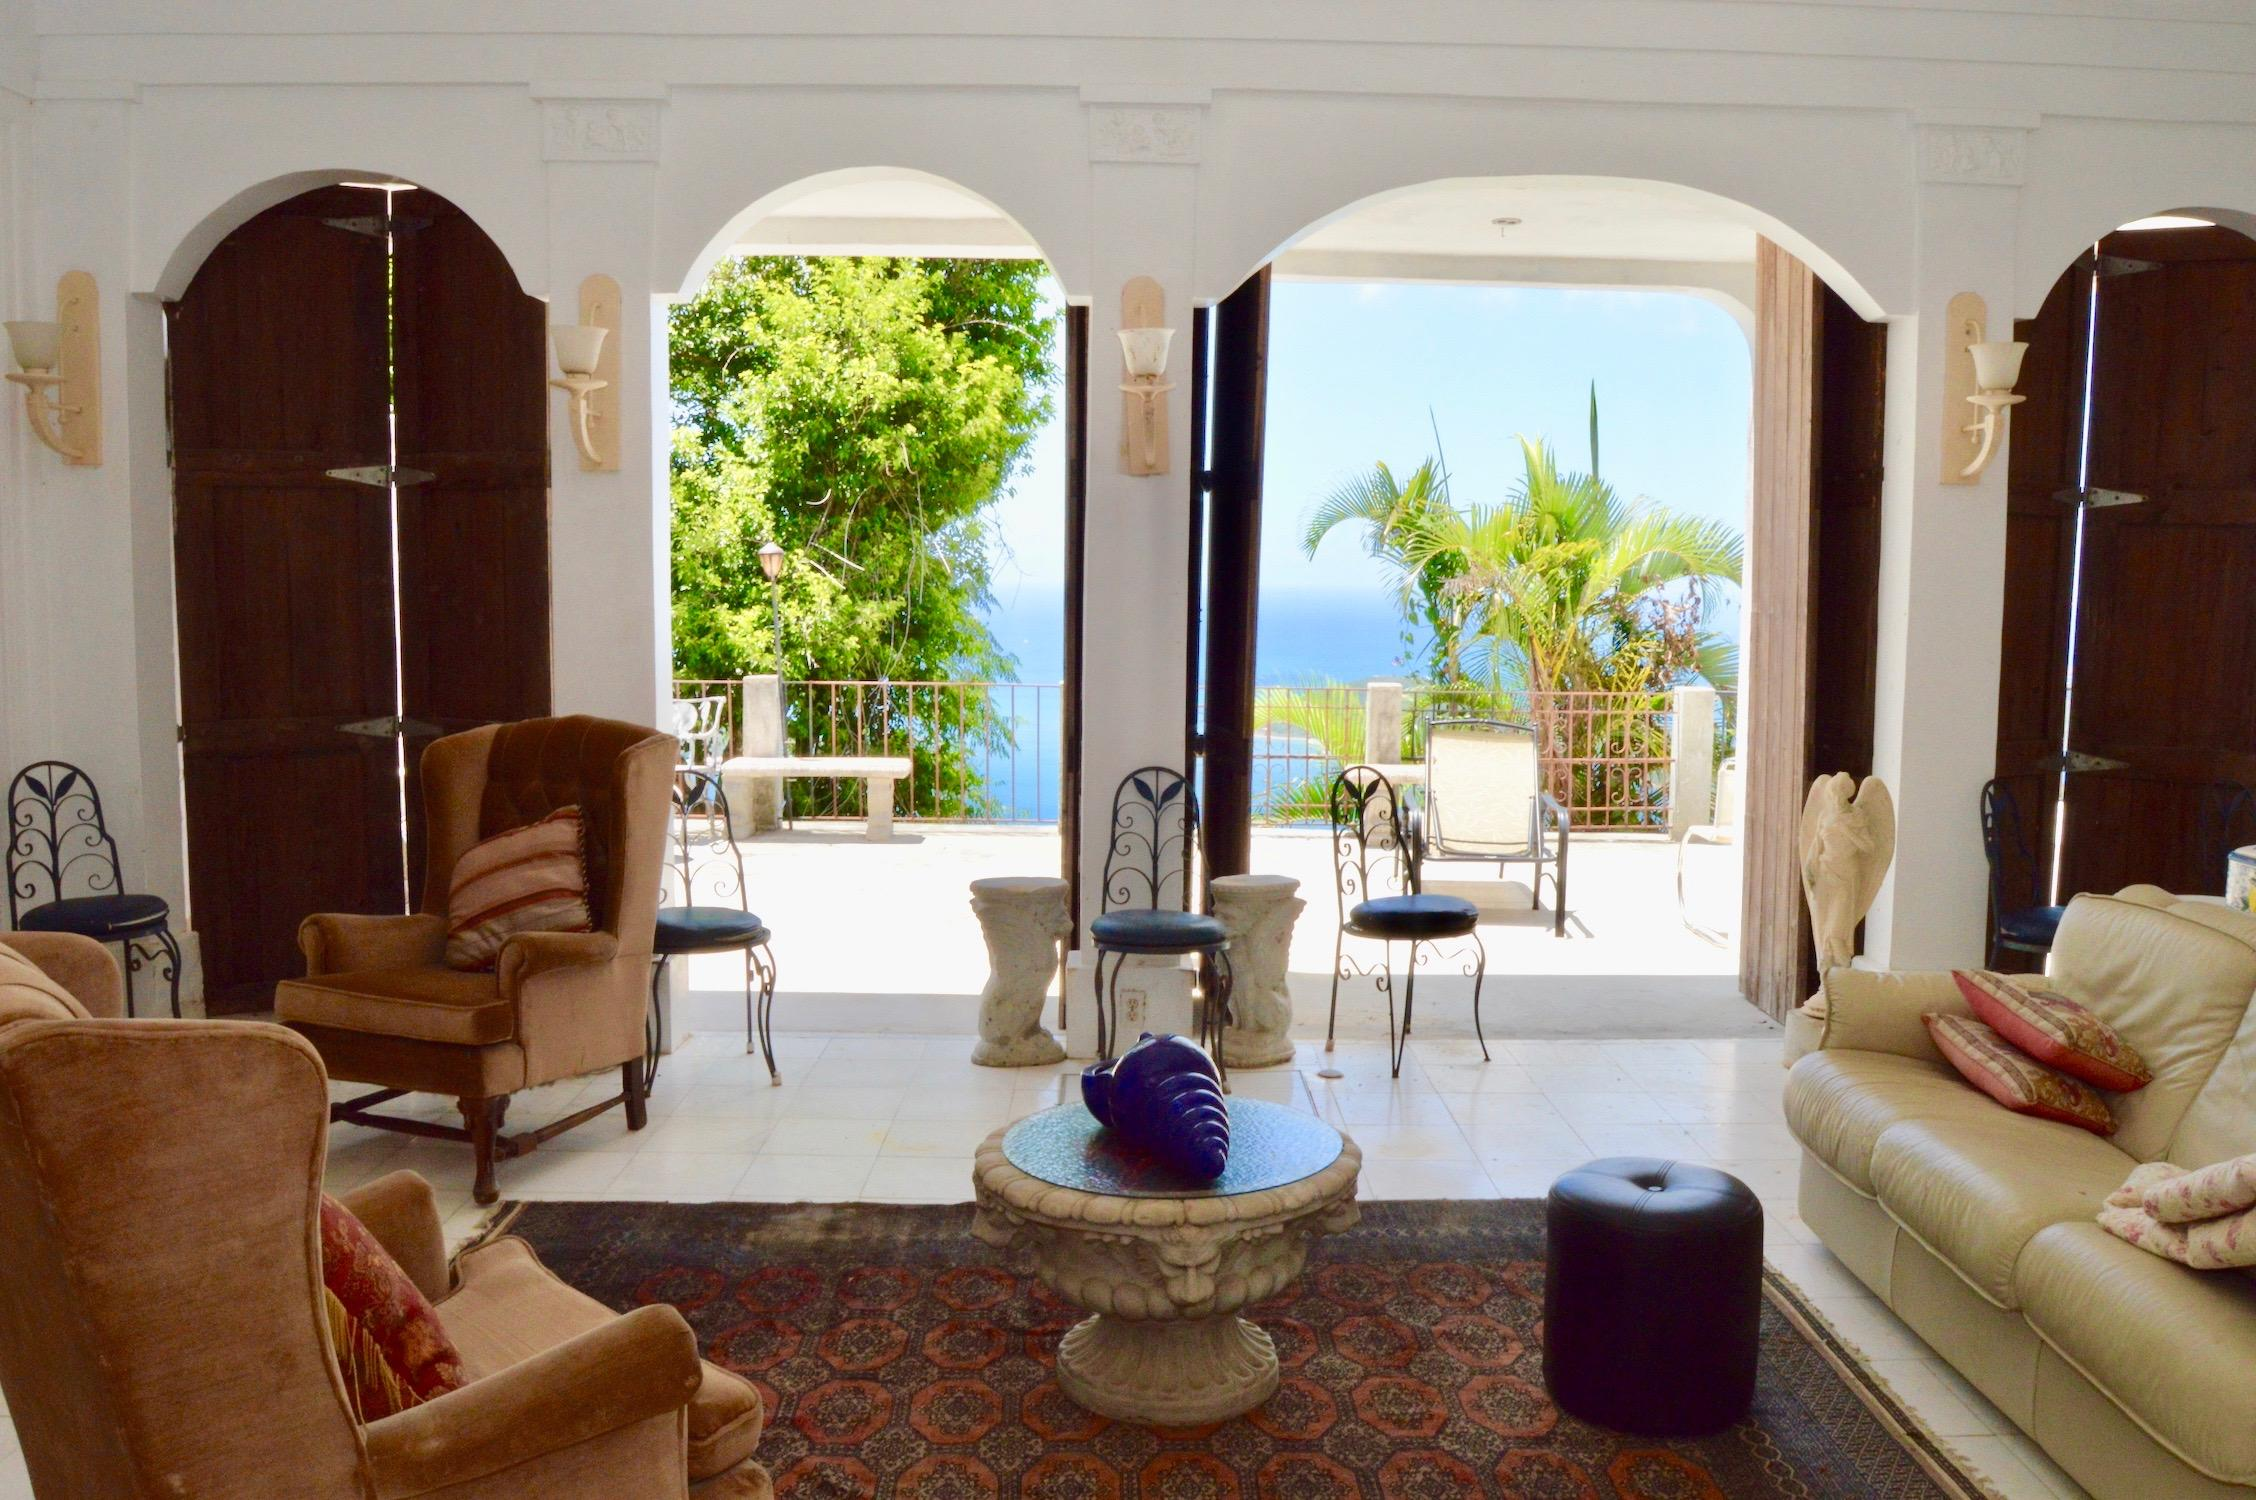 Multi-Family Home for Sale at 10A Mafolie GNS 10A Mafolie GNS St Thomas, Virgin Islands 00802 United States Virgin Islands